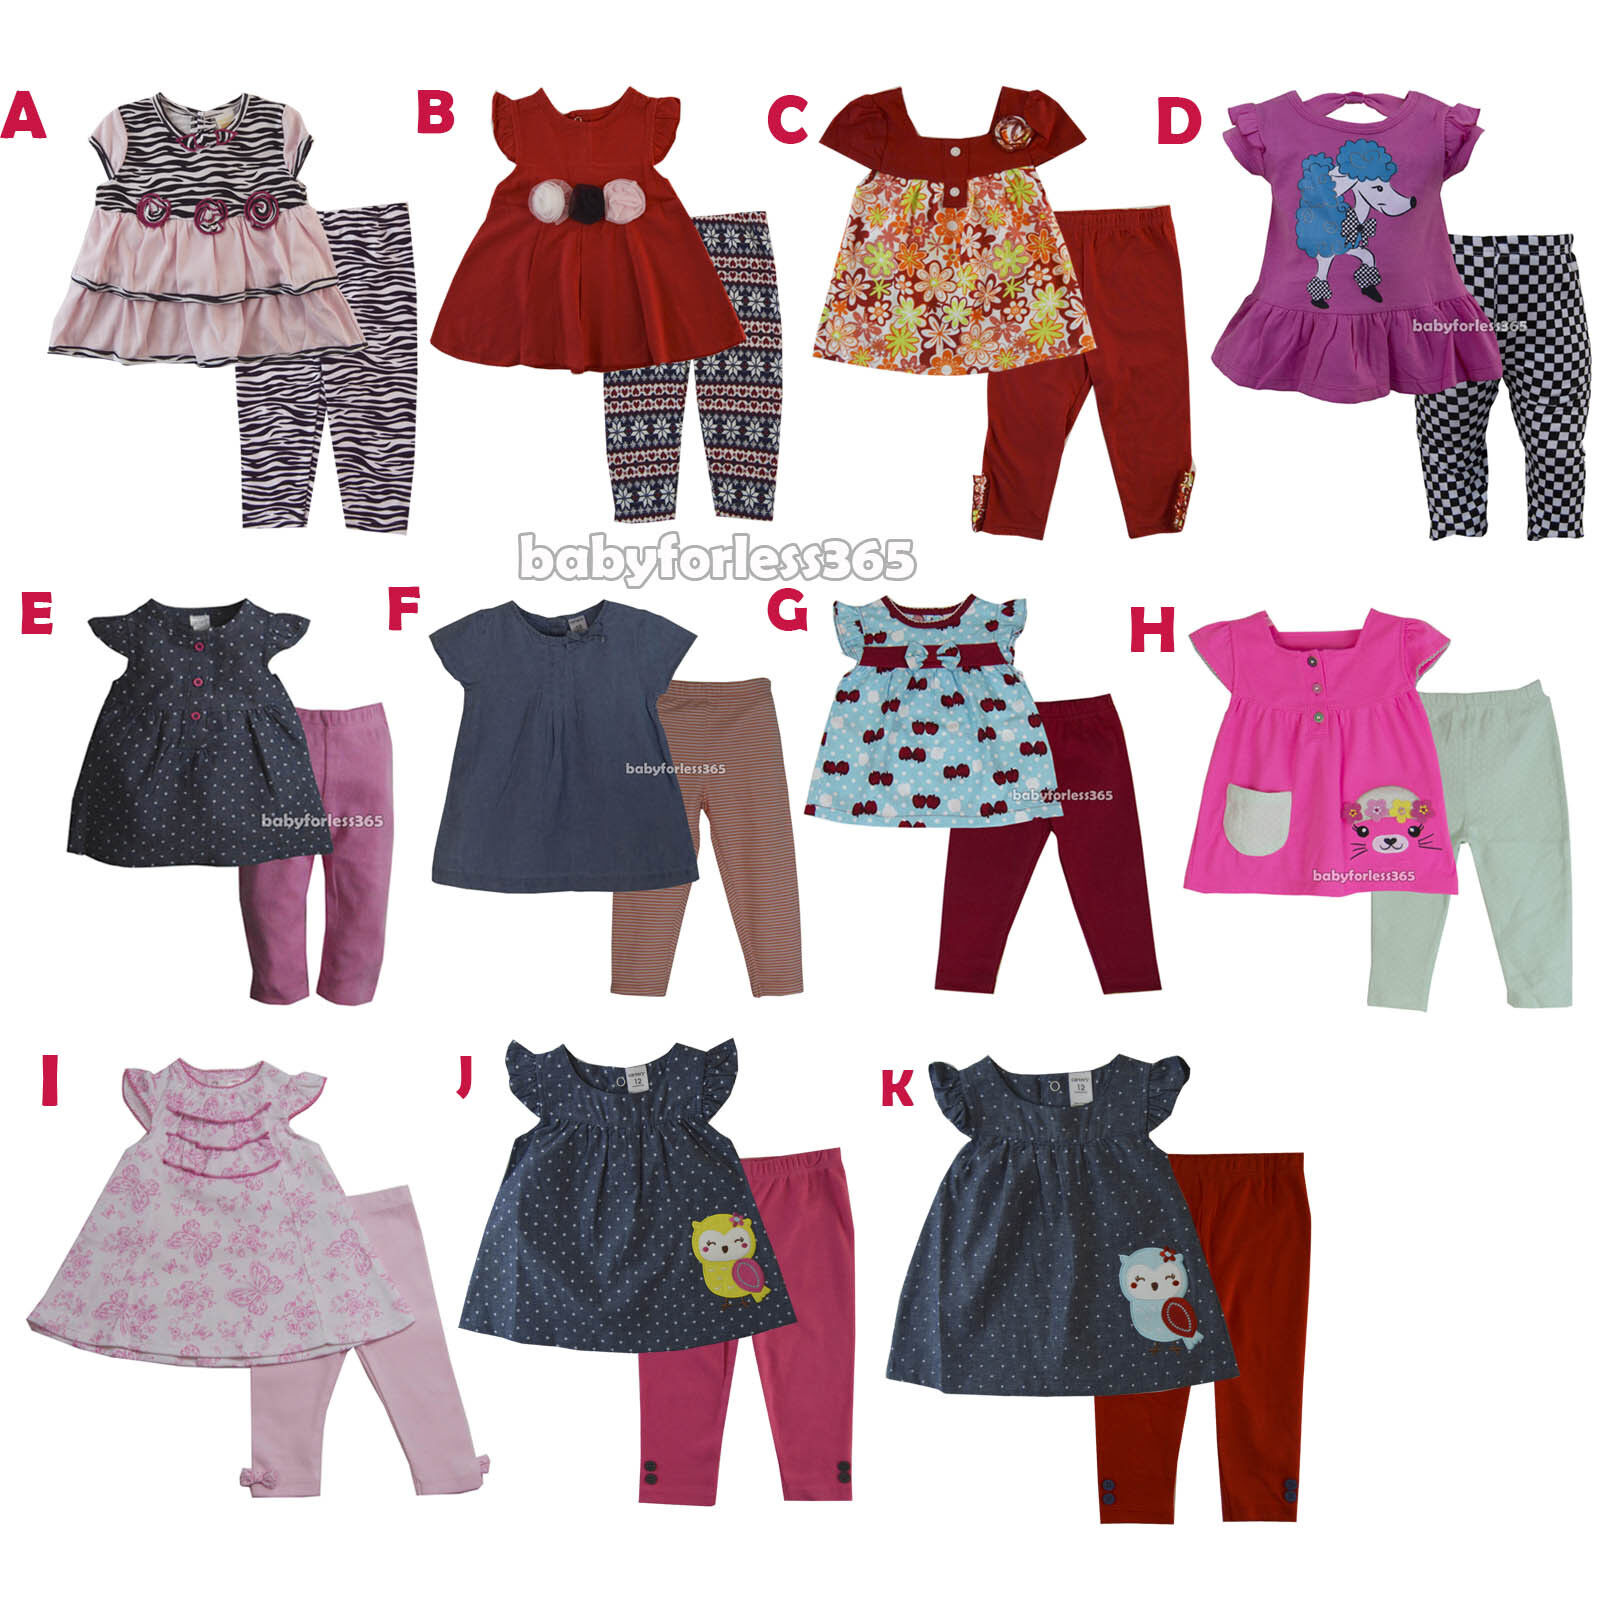 0c1b0dc3d New Carter s Baby Girls Outfit Clothes 2 pcs top legging 3 6 9 12 18 ...